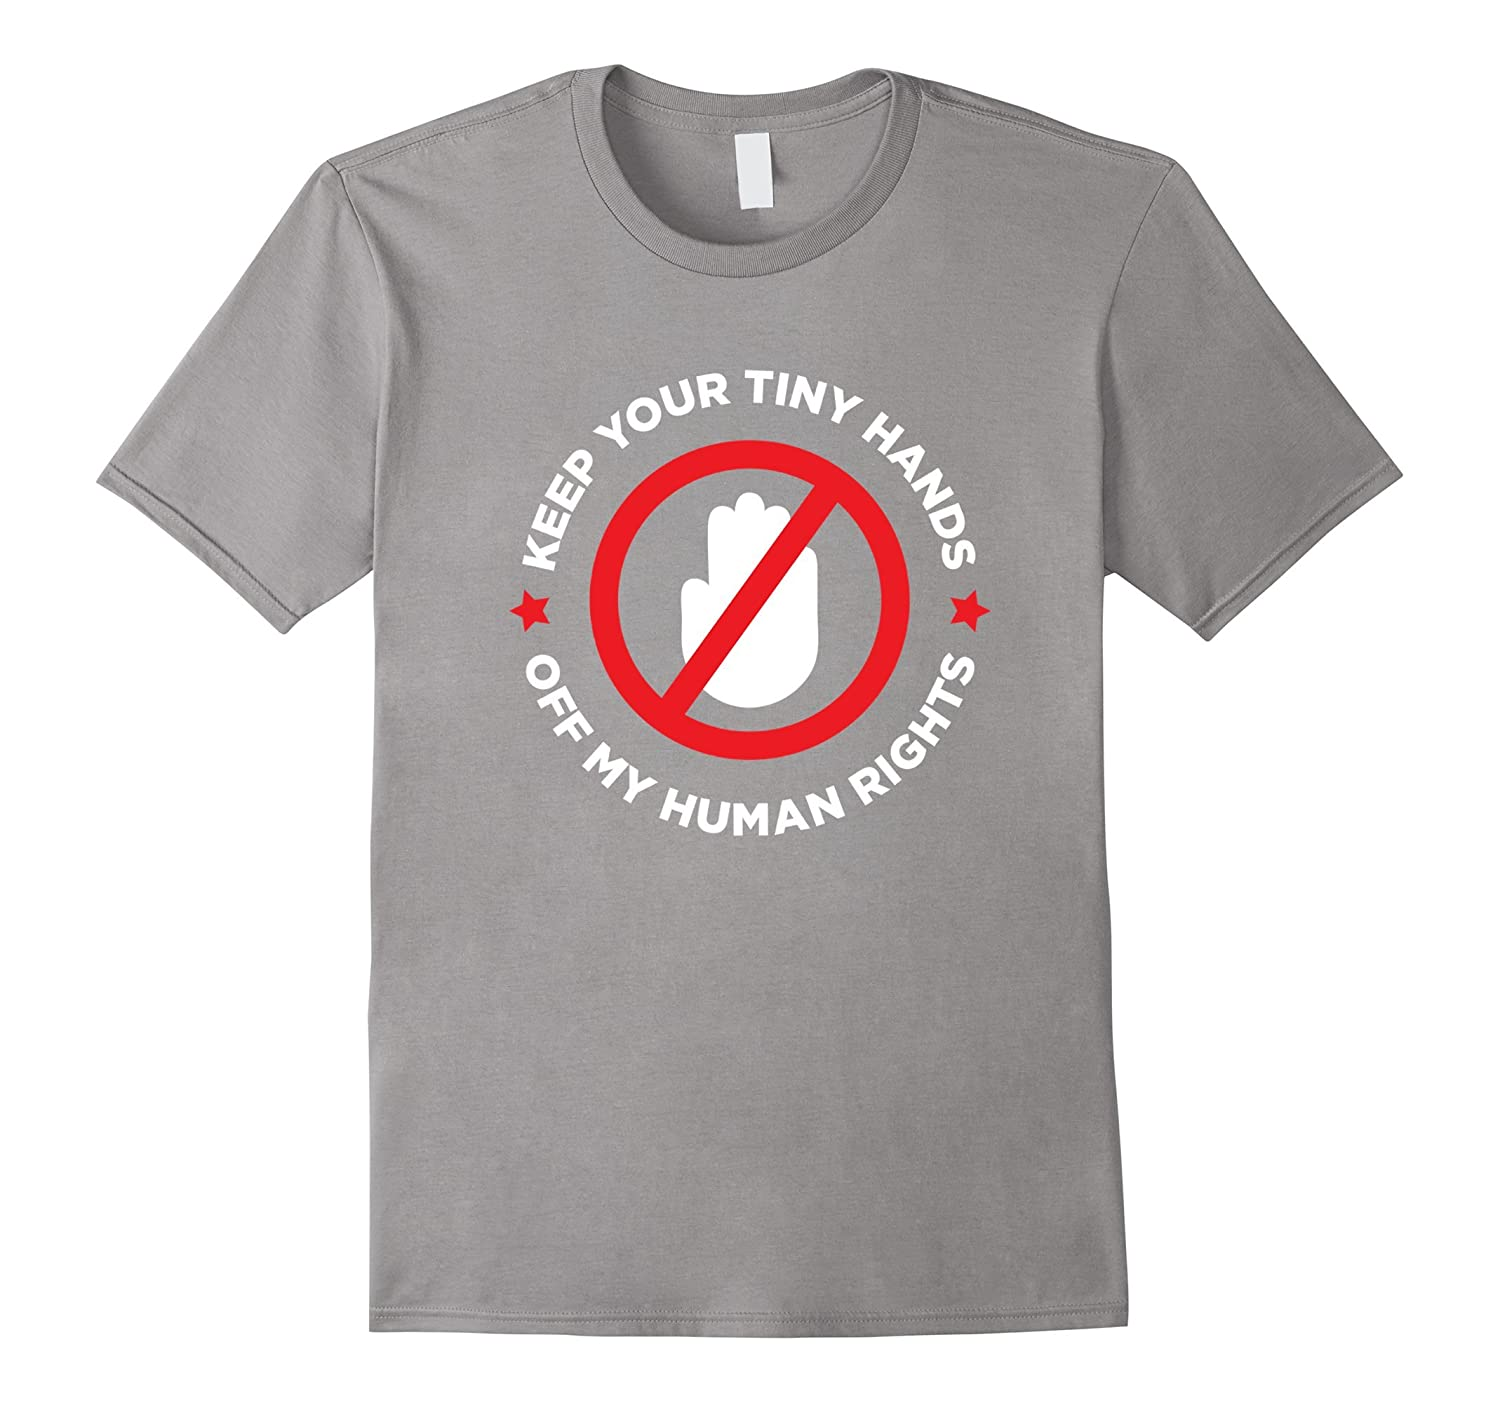 Keep Your Tiny Hands Off My Human Rights – Activist Shirt